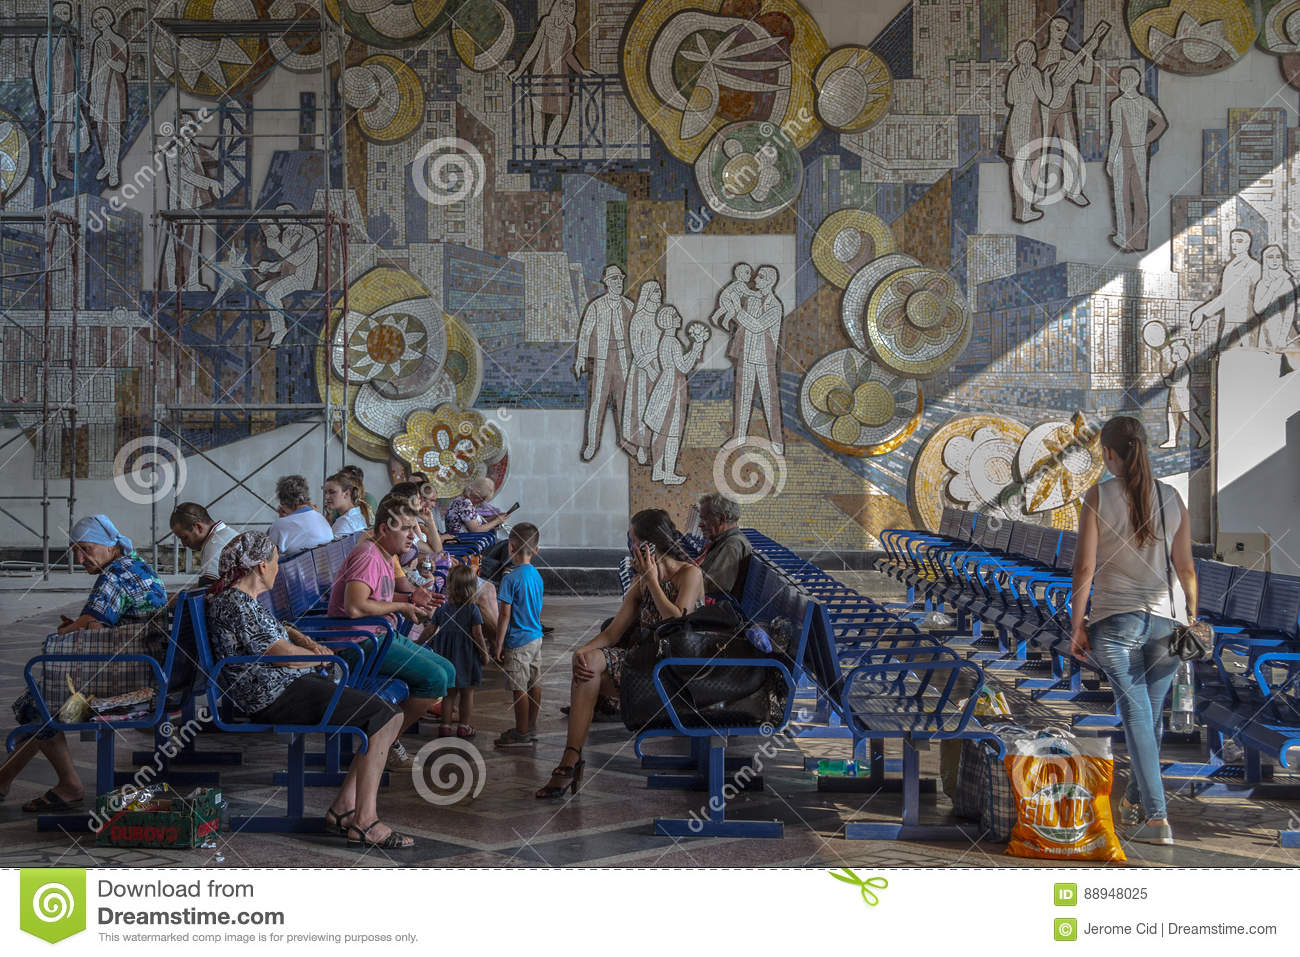 CHISINAU, MOLDOVA - AUGUST 11, 2015: People sitting in the waiting room of the Chisinau bus station, waiting to board a bus